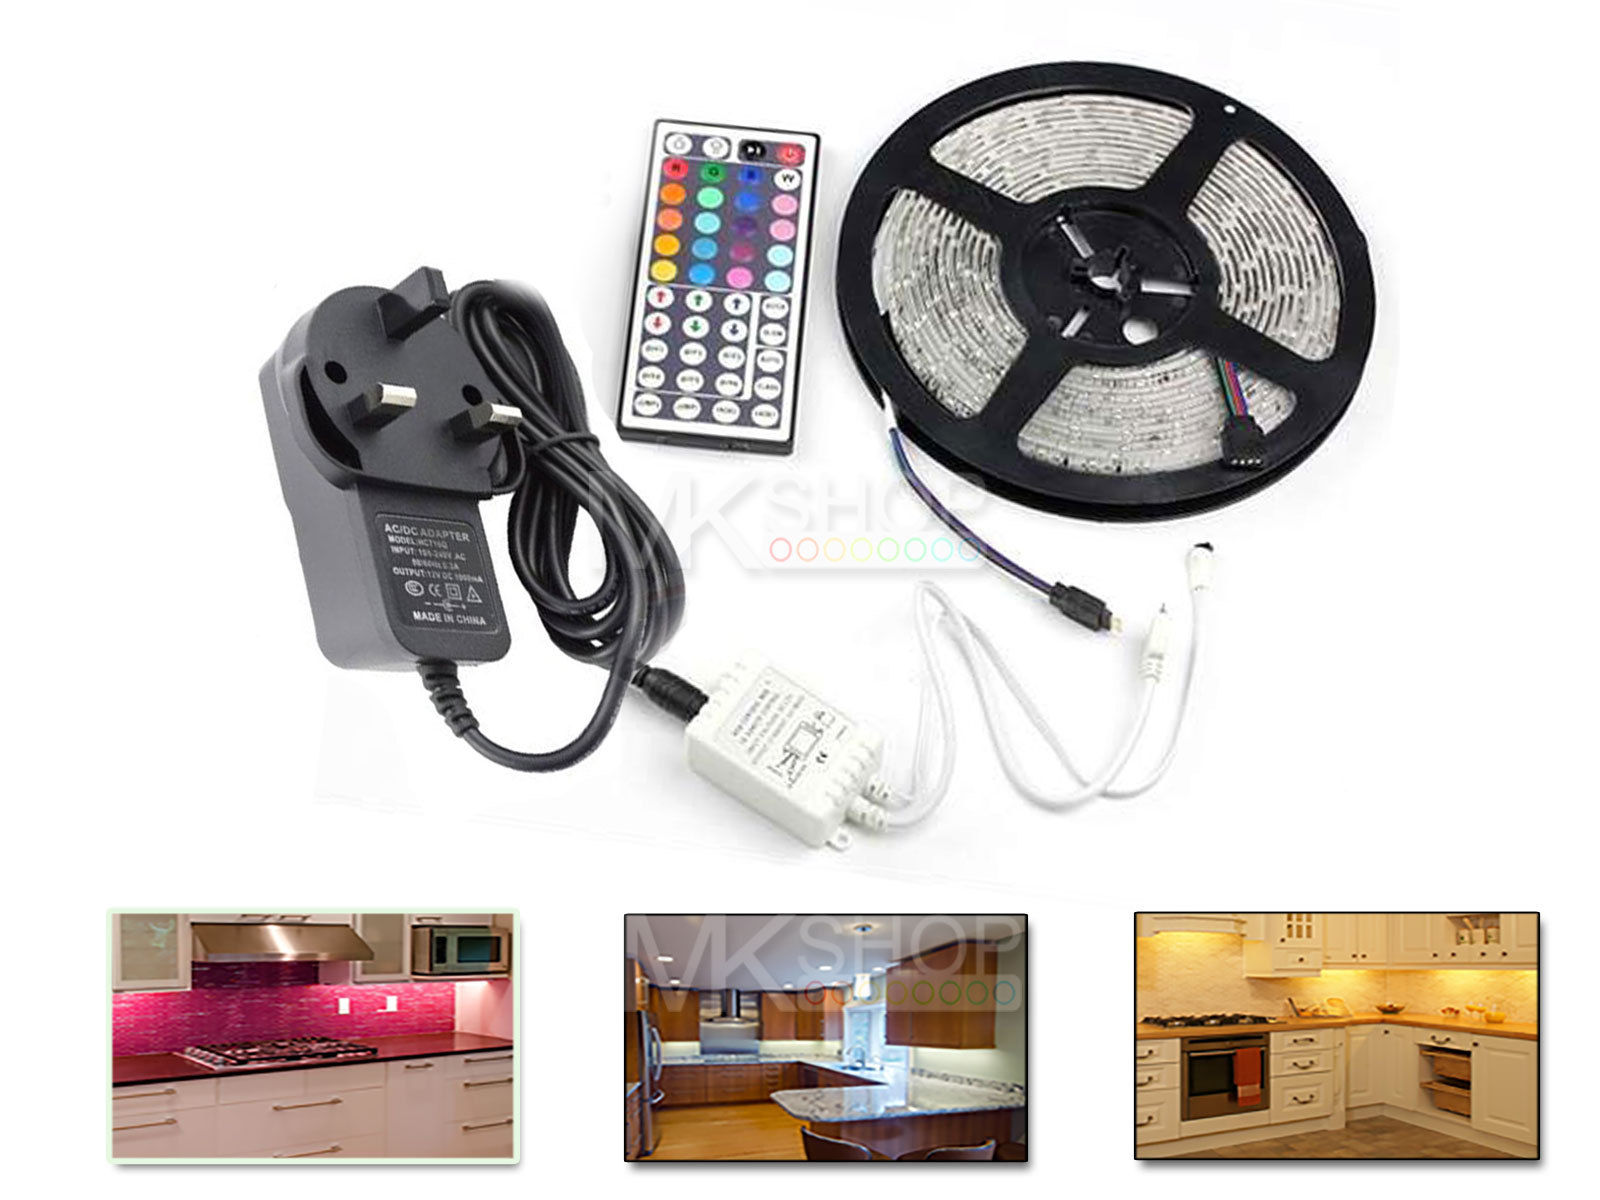 UNDER CABINET COUNTER KITCHEN TV PLASMA LED STRIP LIGHT ...